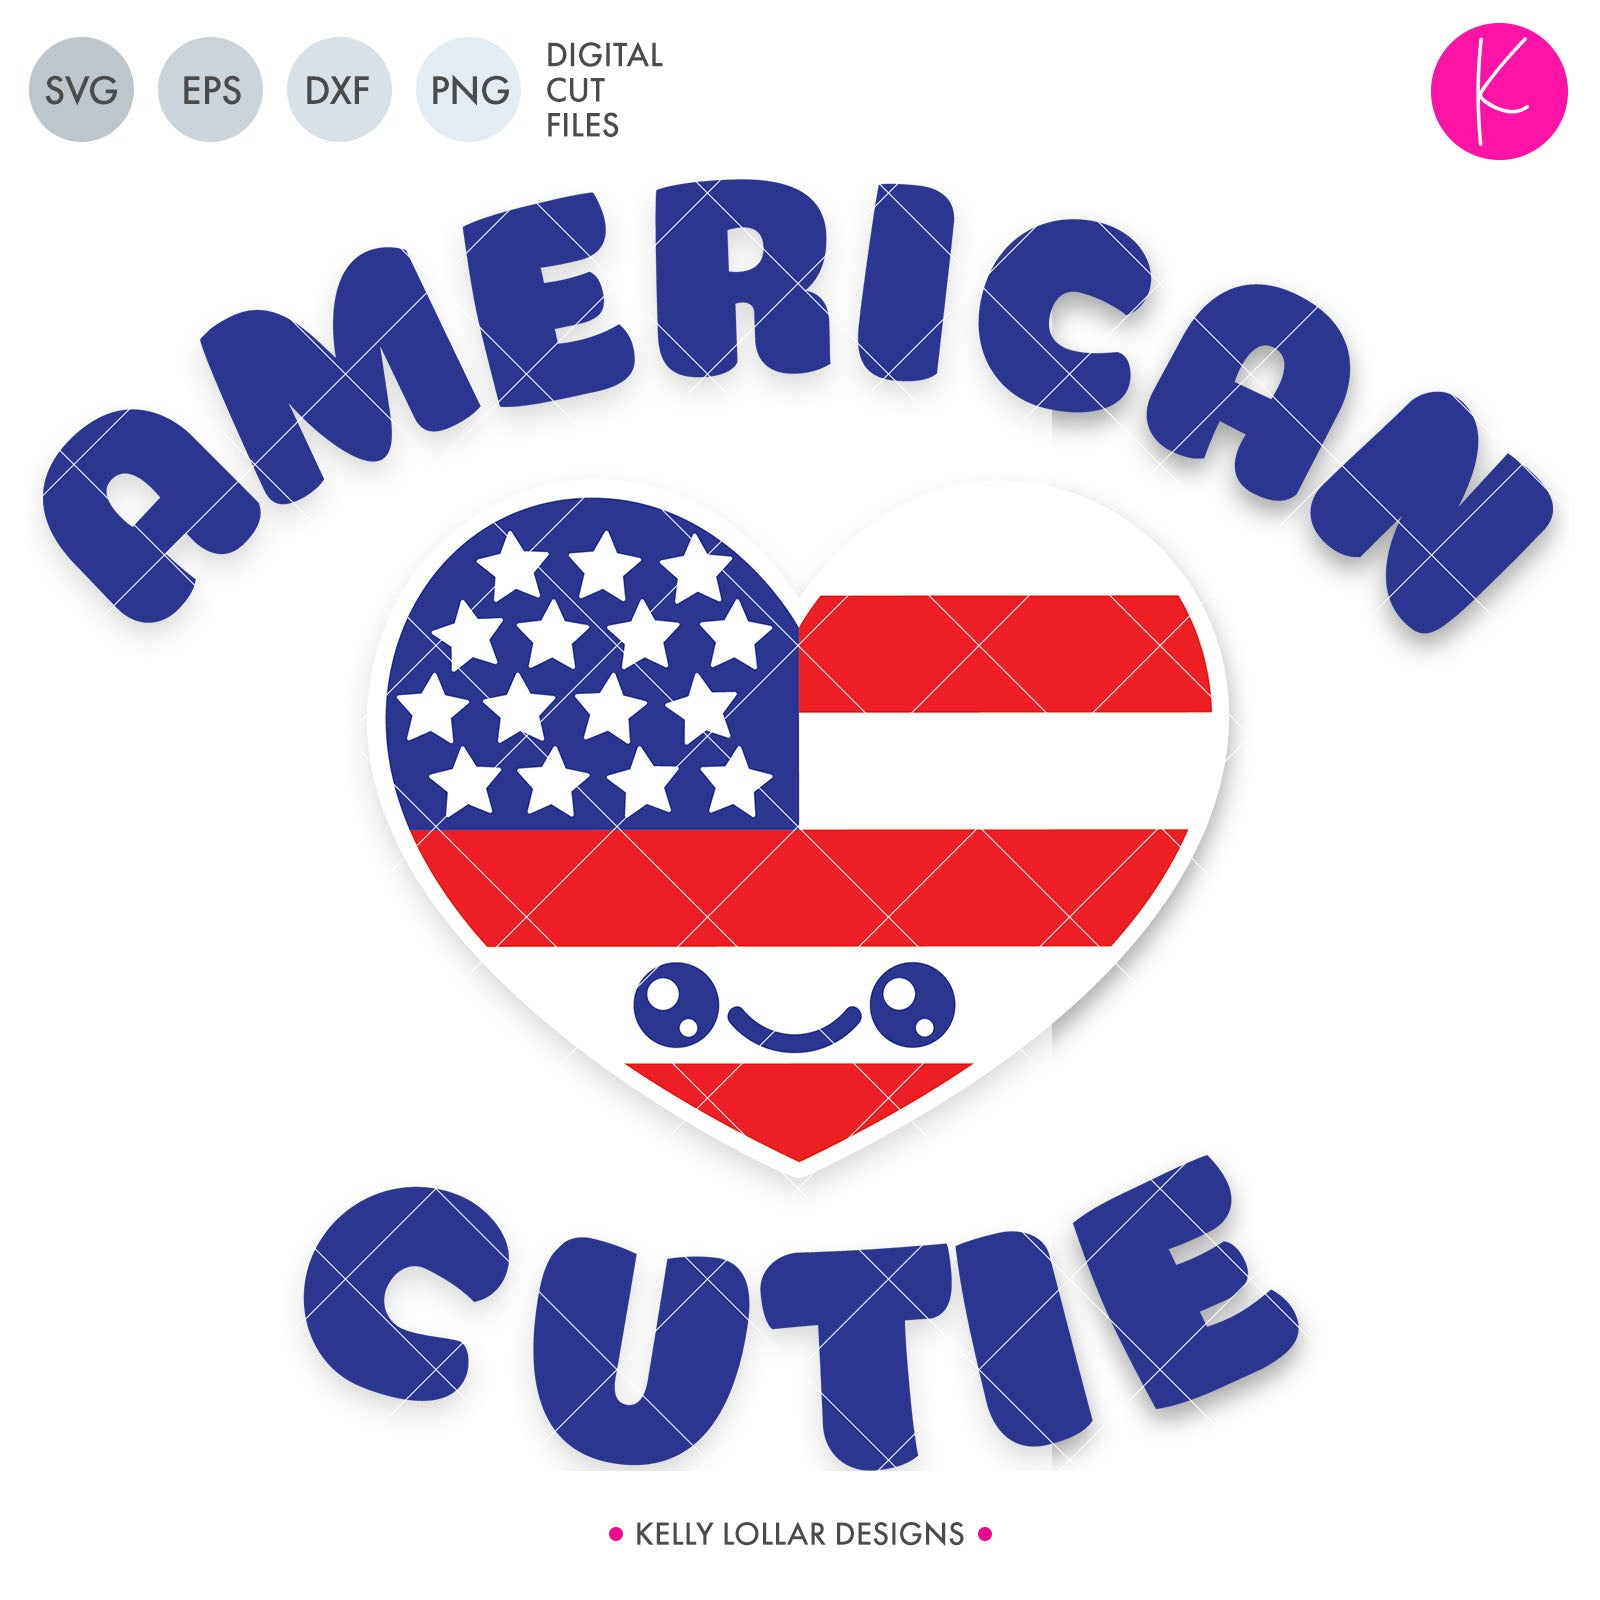 American Cutie SVG Cut File Retro Quote with Smiling American Flag Heart Character for Baby and Toddler 4th of July Shirts | SVG DXF PNG Cut Files 2 files for each format version 1 -